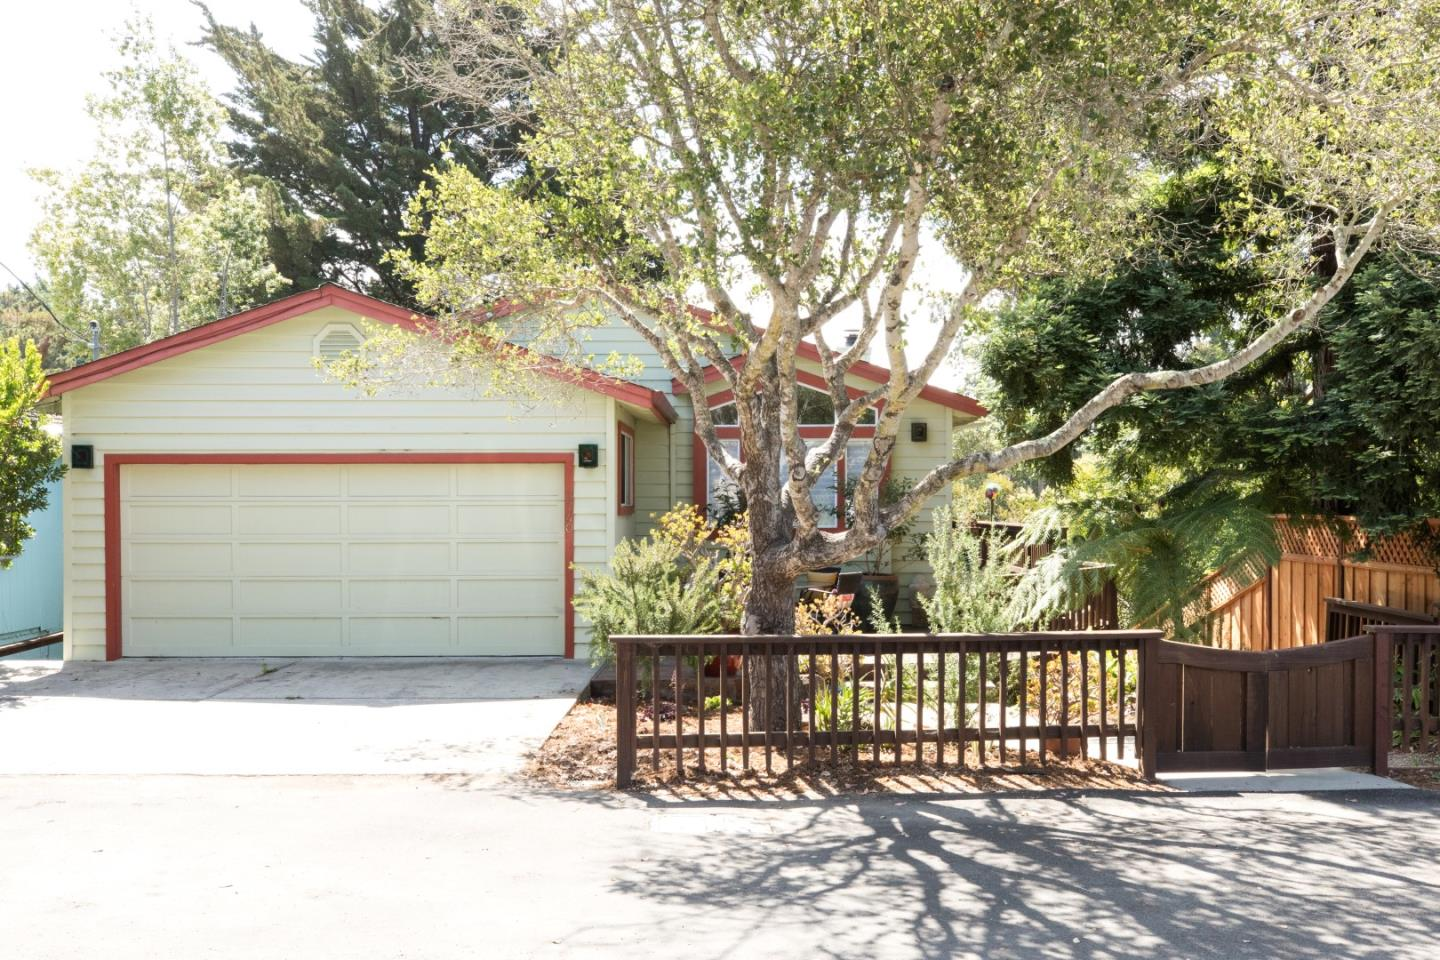 Beautiful custom home with views of Monterey Bay, located in a quiet hillside Soquel neighborhood. This 3BR/2.5BA home offers artistic details with custom lighting, glass chandeliers and acrylic art photos. Entry with Brazilian quartzite, maple wood floors, vaulted ceilings & skylights.Formal living, dining, and family room, eat in kitchen. Family room offers wood burning FP with mahogany & Brazilian quartzite, wood deck off family room, large open kitchen with natural maple cabinets, granite counters, gas cook-top, separate oven with built-in microwave, SS refrigerator & Miele dishwasher. Master bedroom with balcony, walk-in closet with floor to ceiling maple and glass cabinets, Master bath w/Indian Amigmatite stone floor, counter tops, shower walls & bath surround, mahogany vanity and Jacuzzi tub.Central heat and AC with Ecobee thermostat, washer/dryer, dual pane windows, 2-car garage with floor to ceiling cabinets. Walk to downtown Soquel or bike ride into the Village of Capitola.